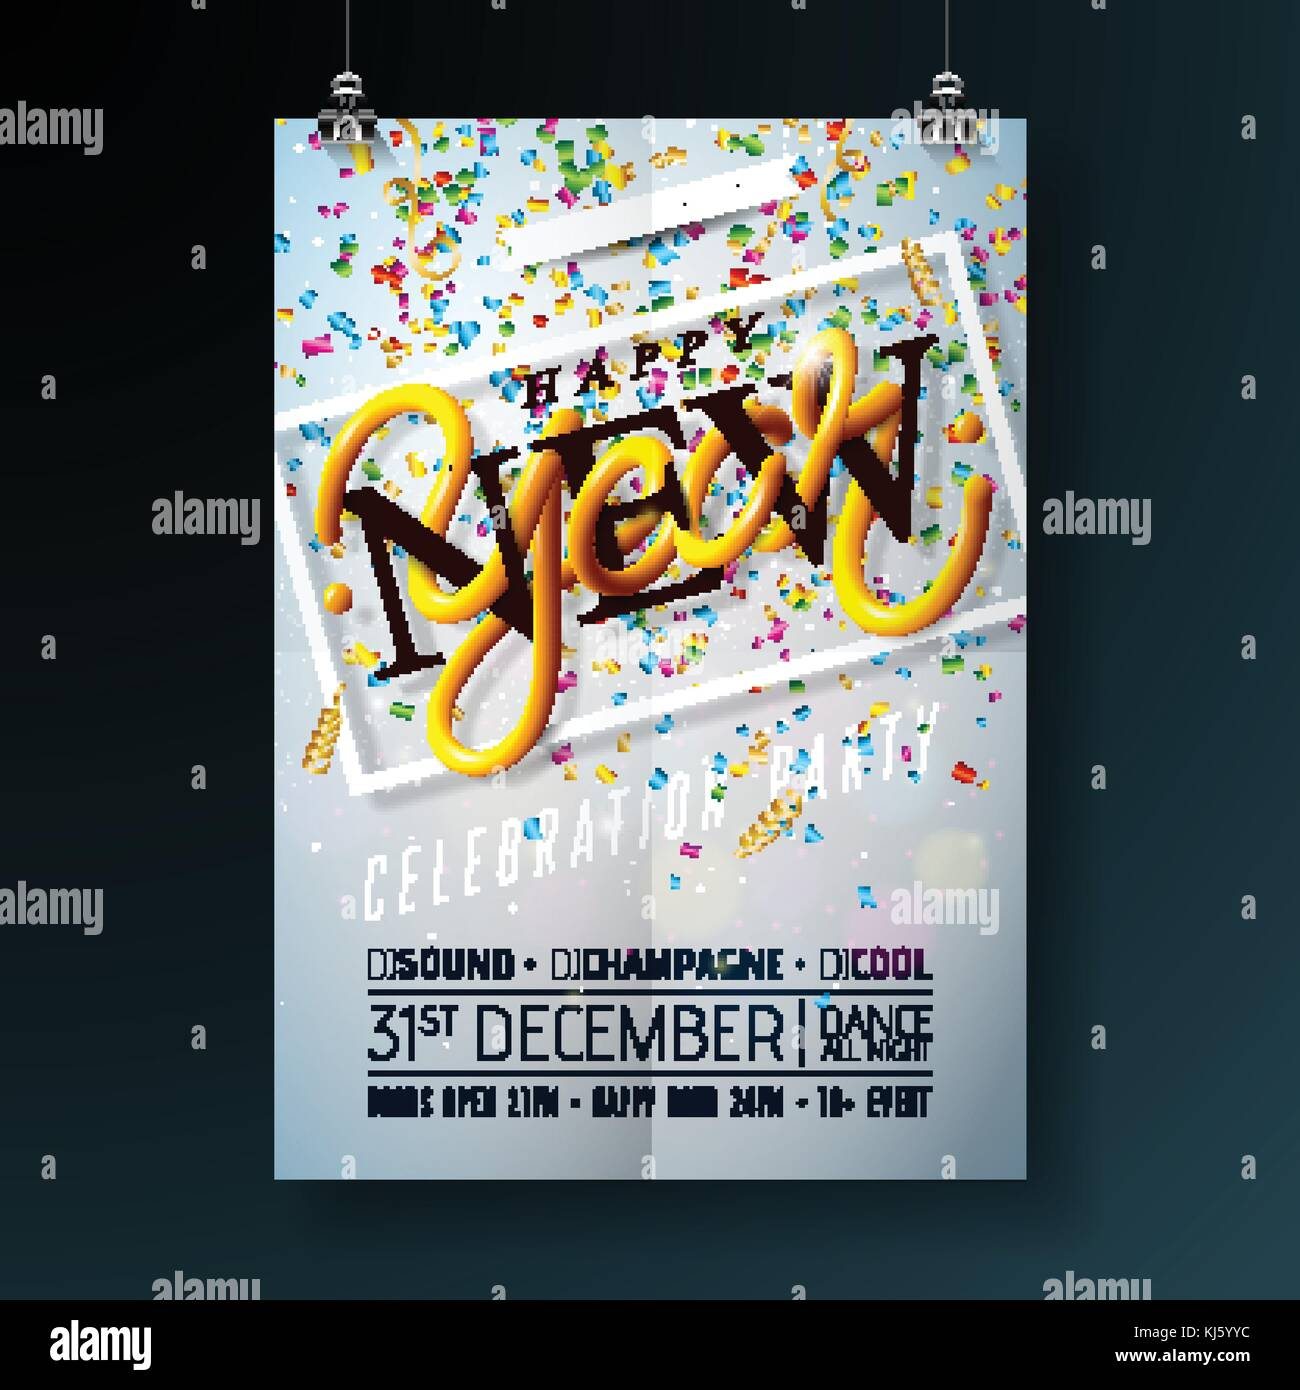 happy new year party celebration flyer template illustration with typography design and falling confetti on shiny background